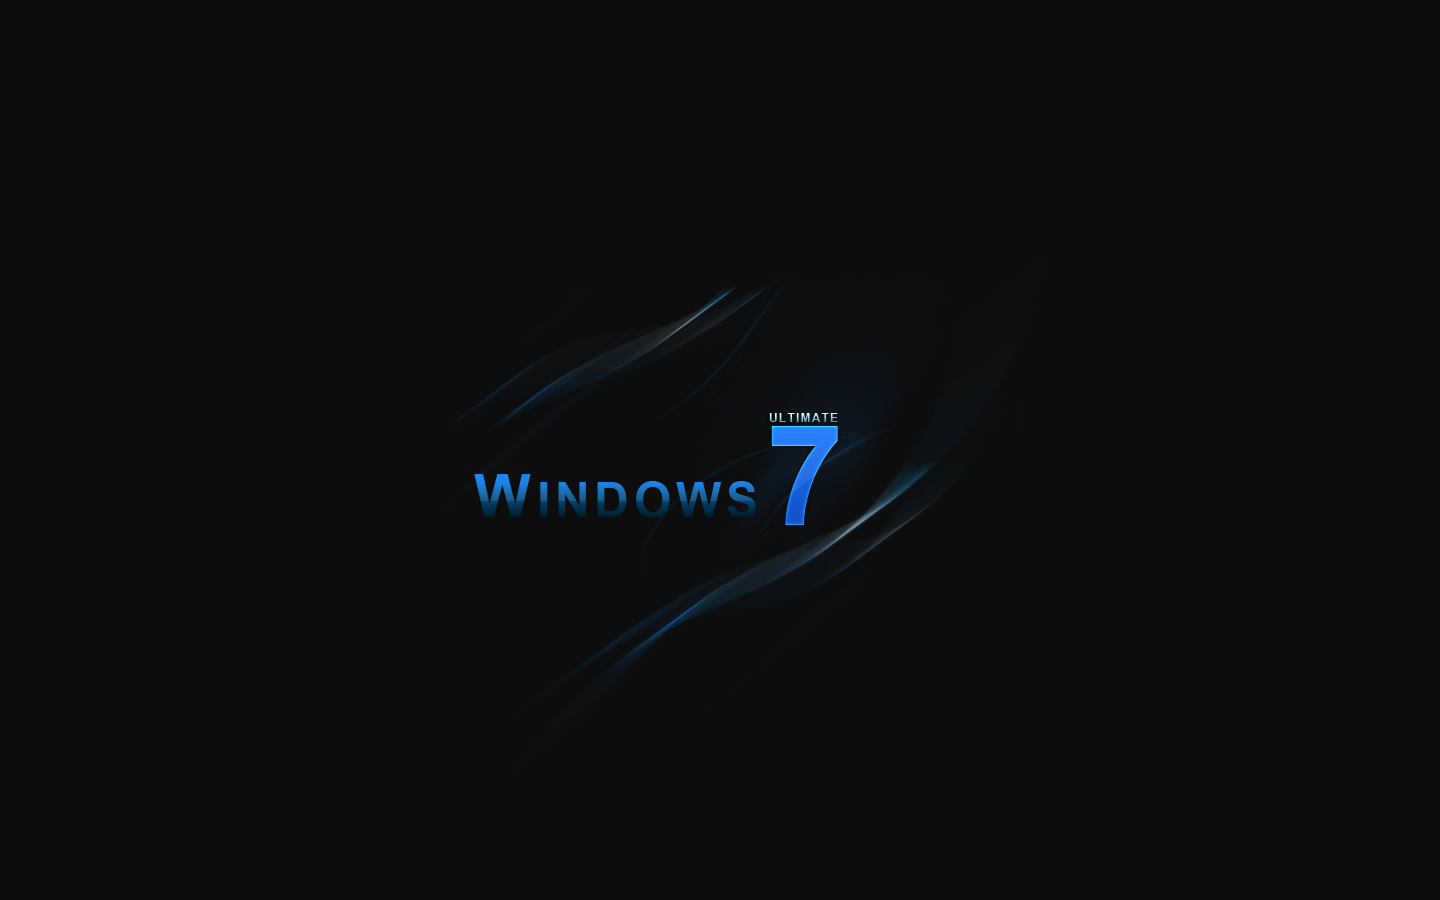 Theme Windows 7 Image For Wallpaper Photo On Snowman Wallpapers Com Iphone Android Wallpaper Theme In 2021 Desktop Wallpapers Backgrounds Dark Wallpaper Windows